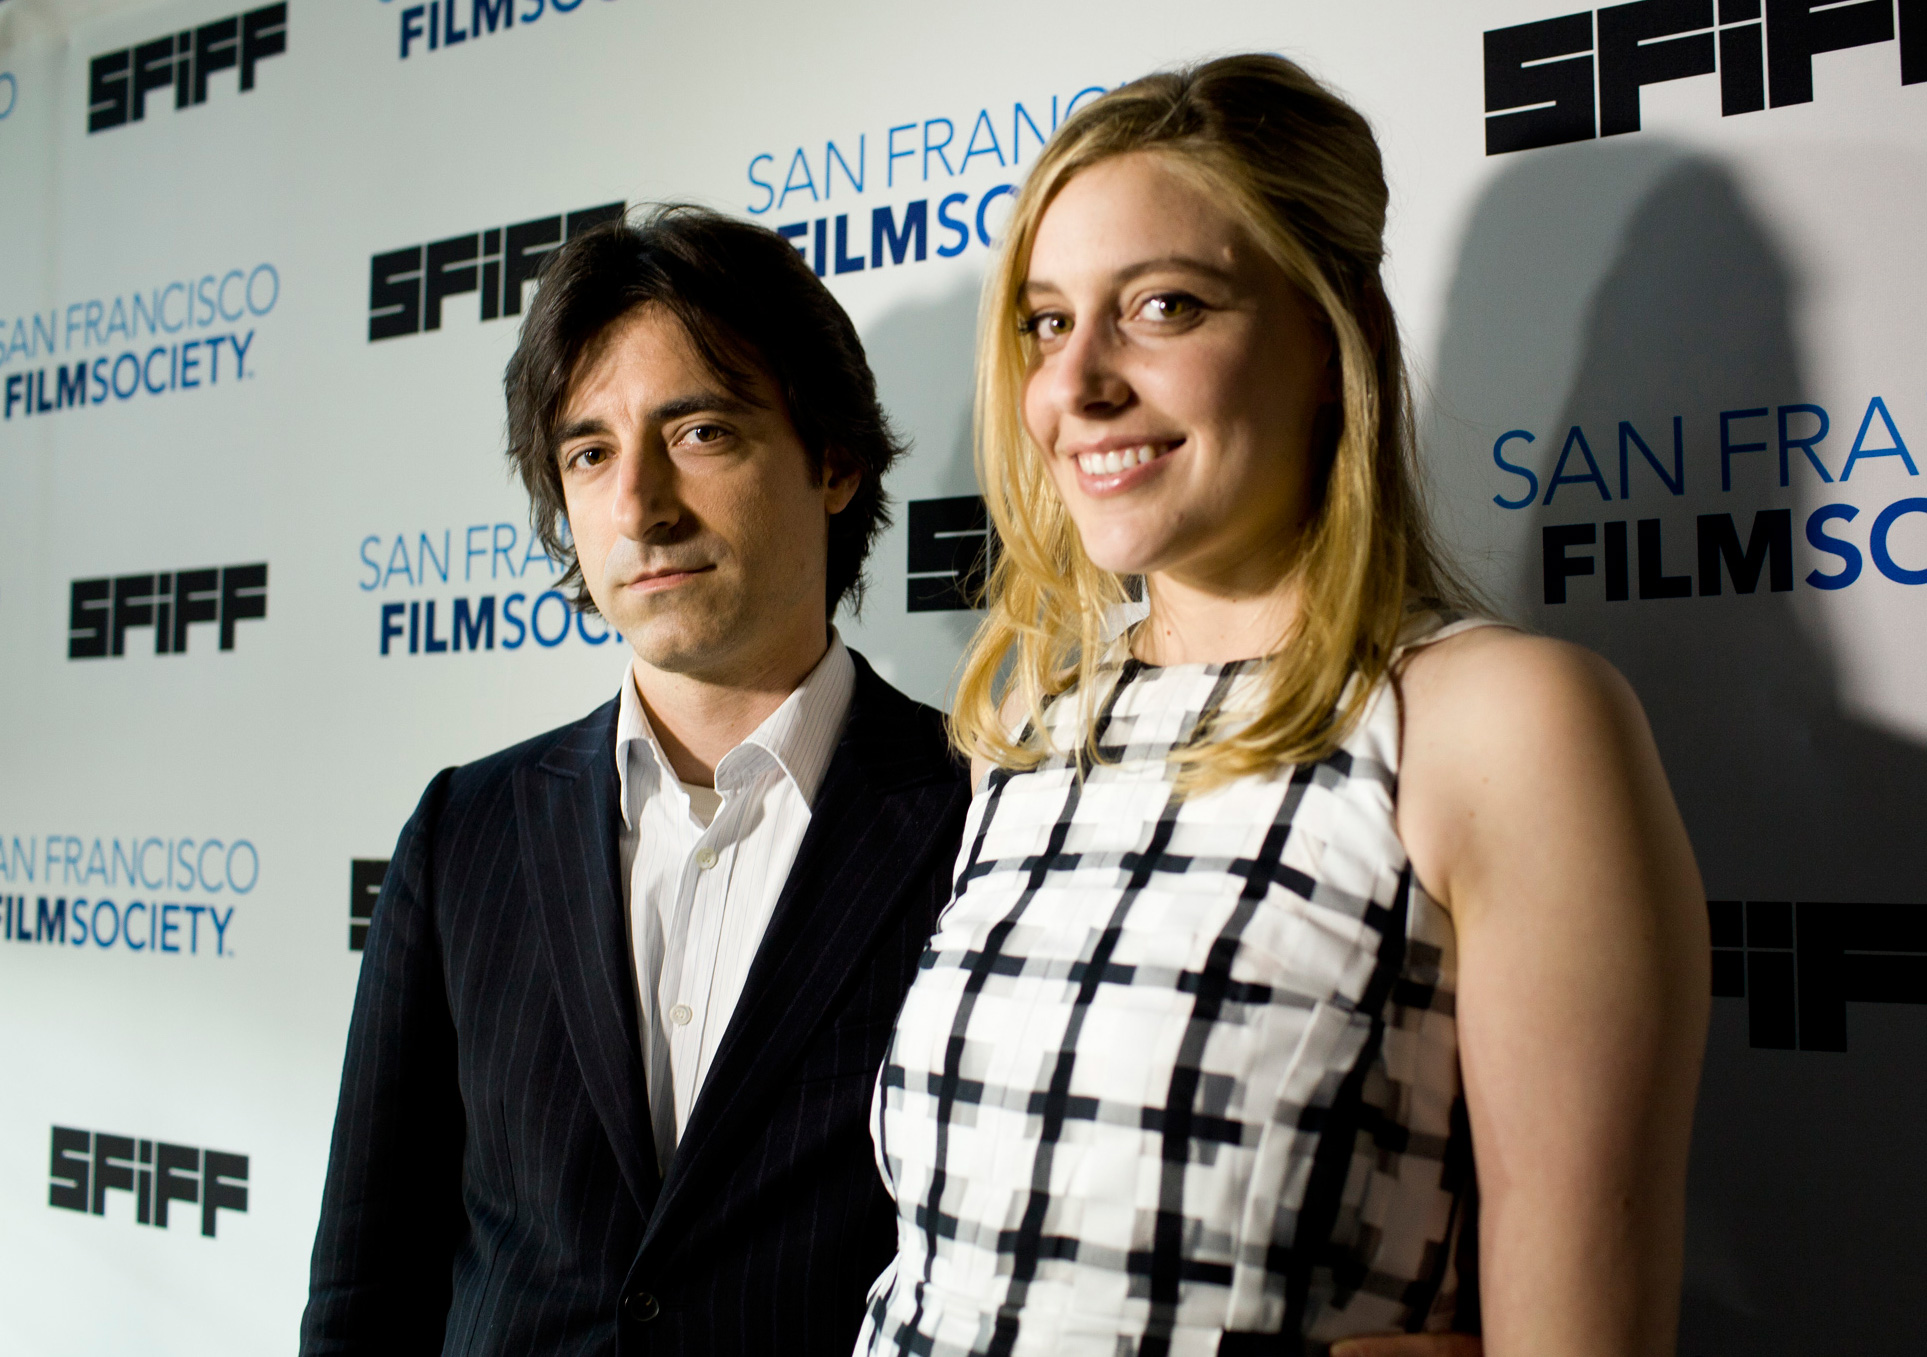 Noah Baumbach and Greta Gerwig at the premiere of FRANCES HA at the 56th San Francisco International Film Festival. Photographed by Pamela Gentile.